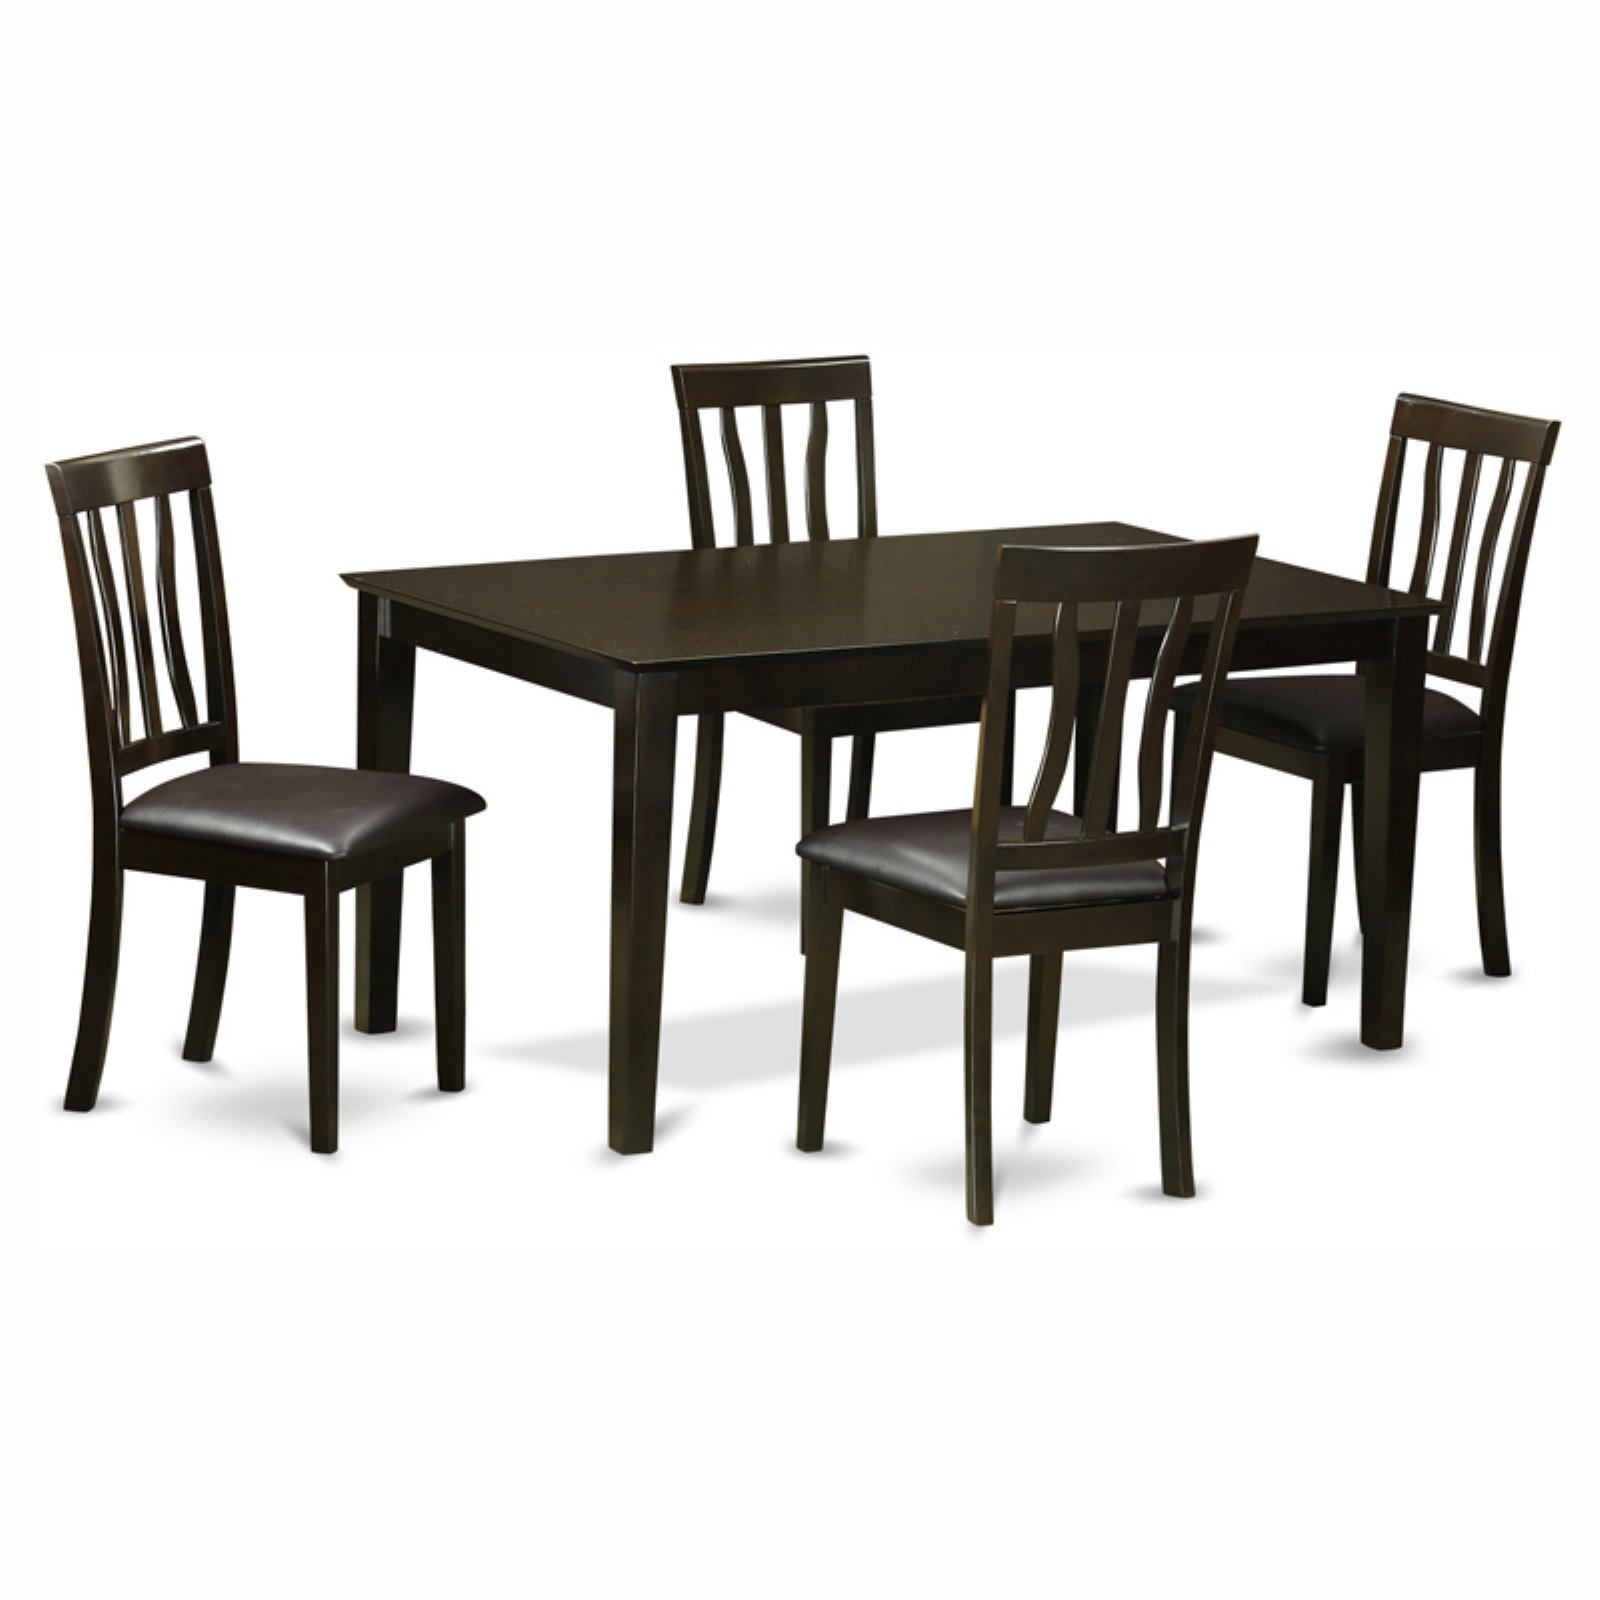 East West Furniture Capris 5 Piece Rectangular Dining Table Set with Antique Faux Leather Seat Chairs